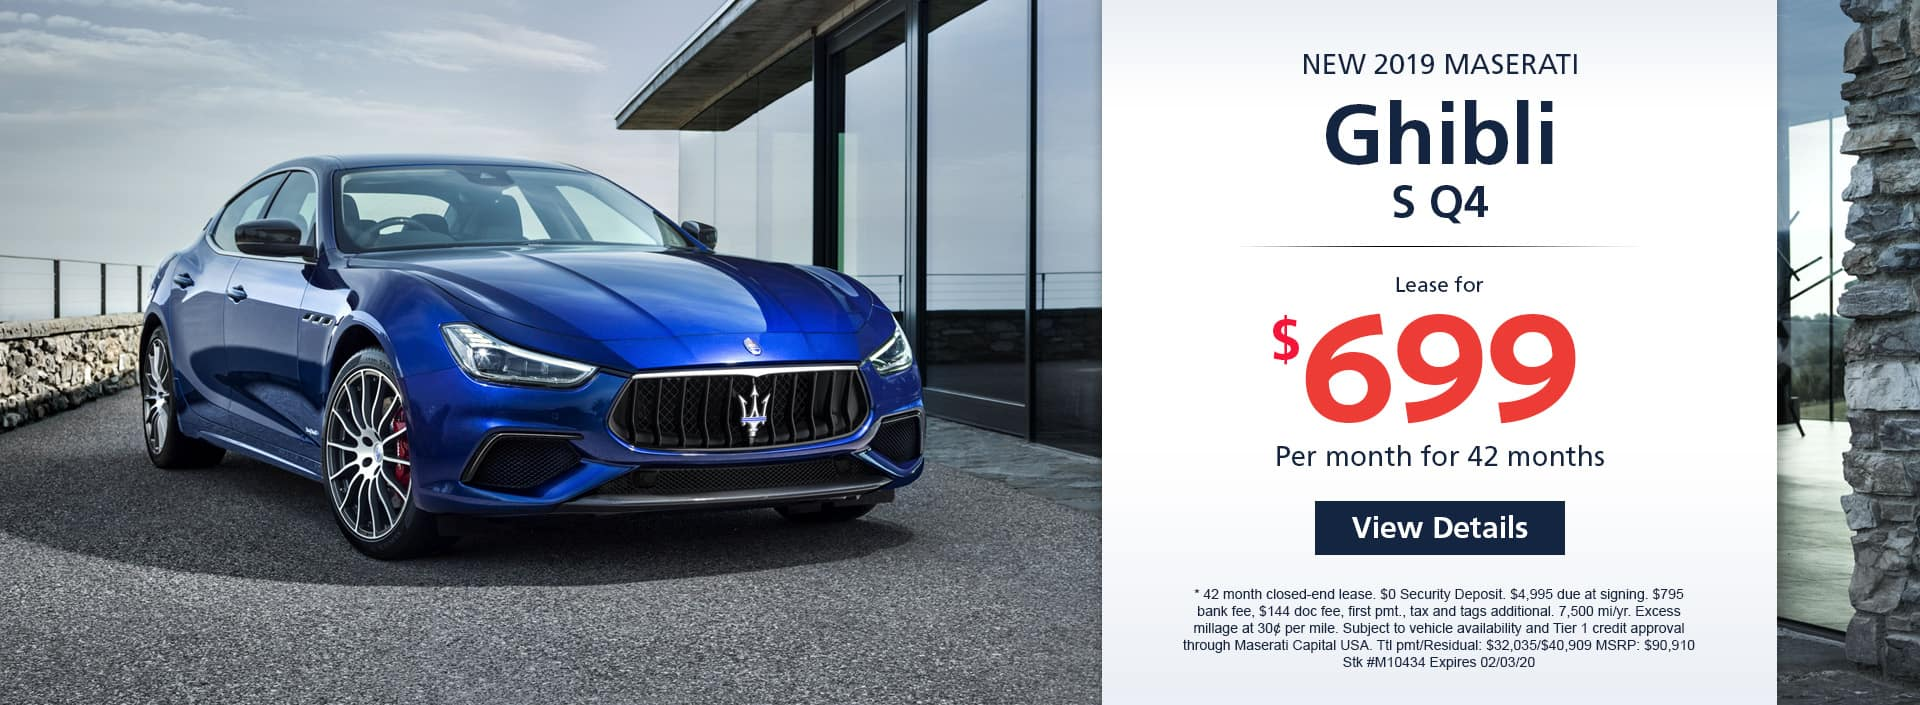 Lease a new 2019 Maserati Ghibli S Q4 for $699 a month for 42 months. Or get special 0% APR financing for up to 60 months or 0% APR financing up to 72 months